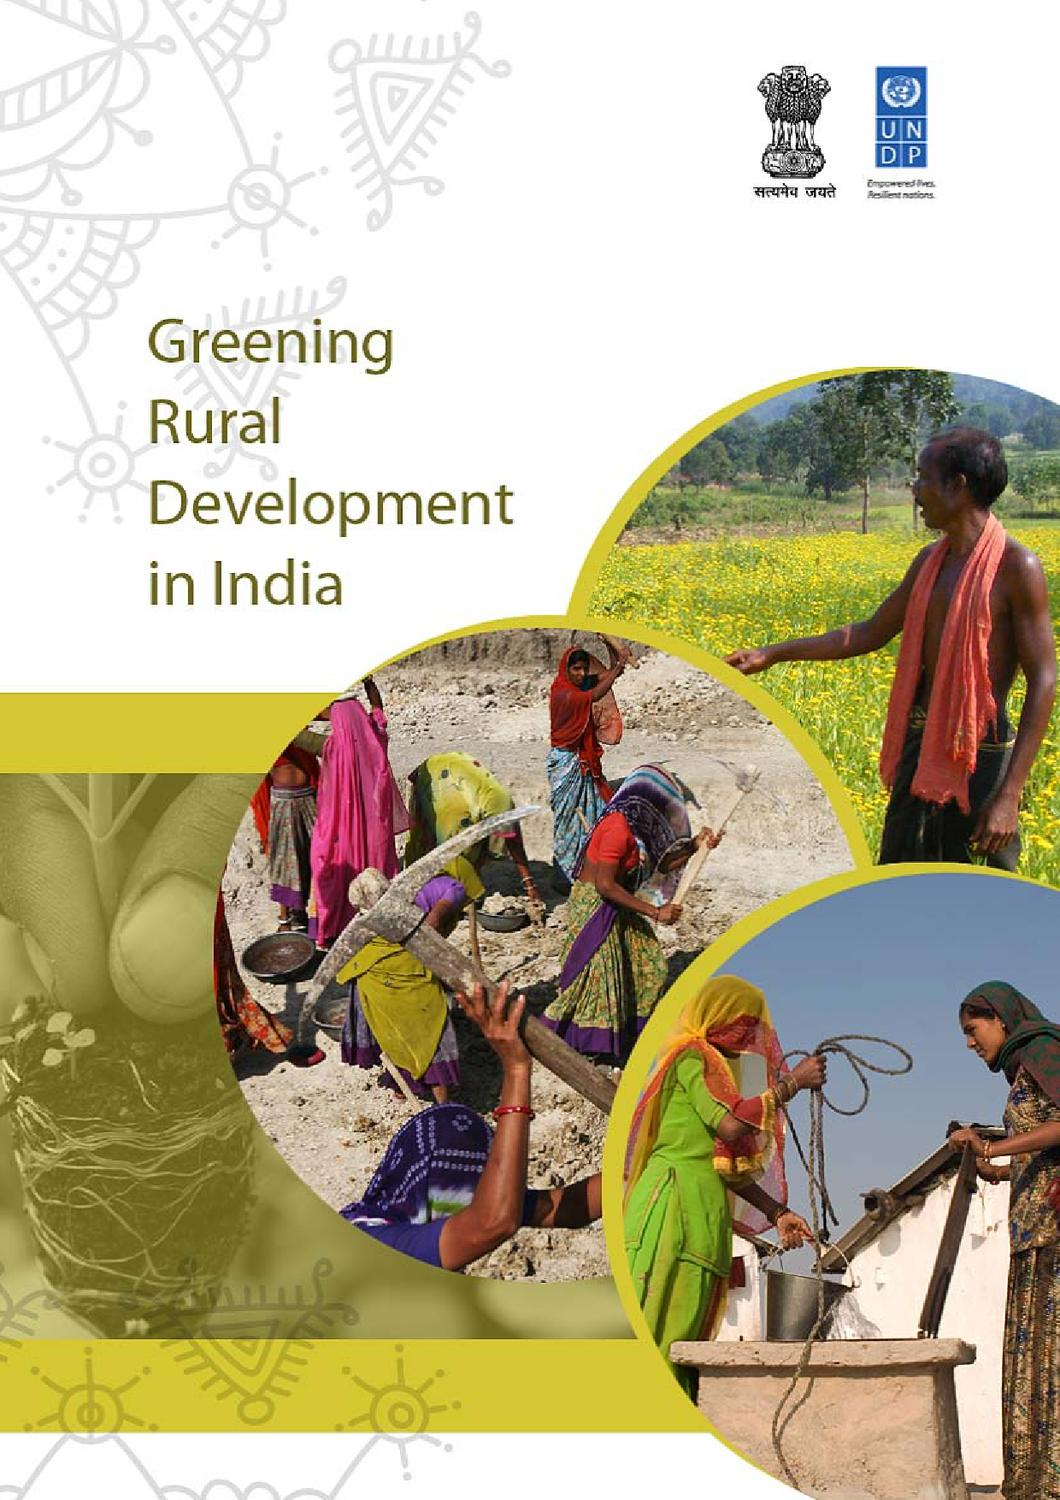 greening rural development in by united nations development  greening rural development in by united nations development programme issuu